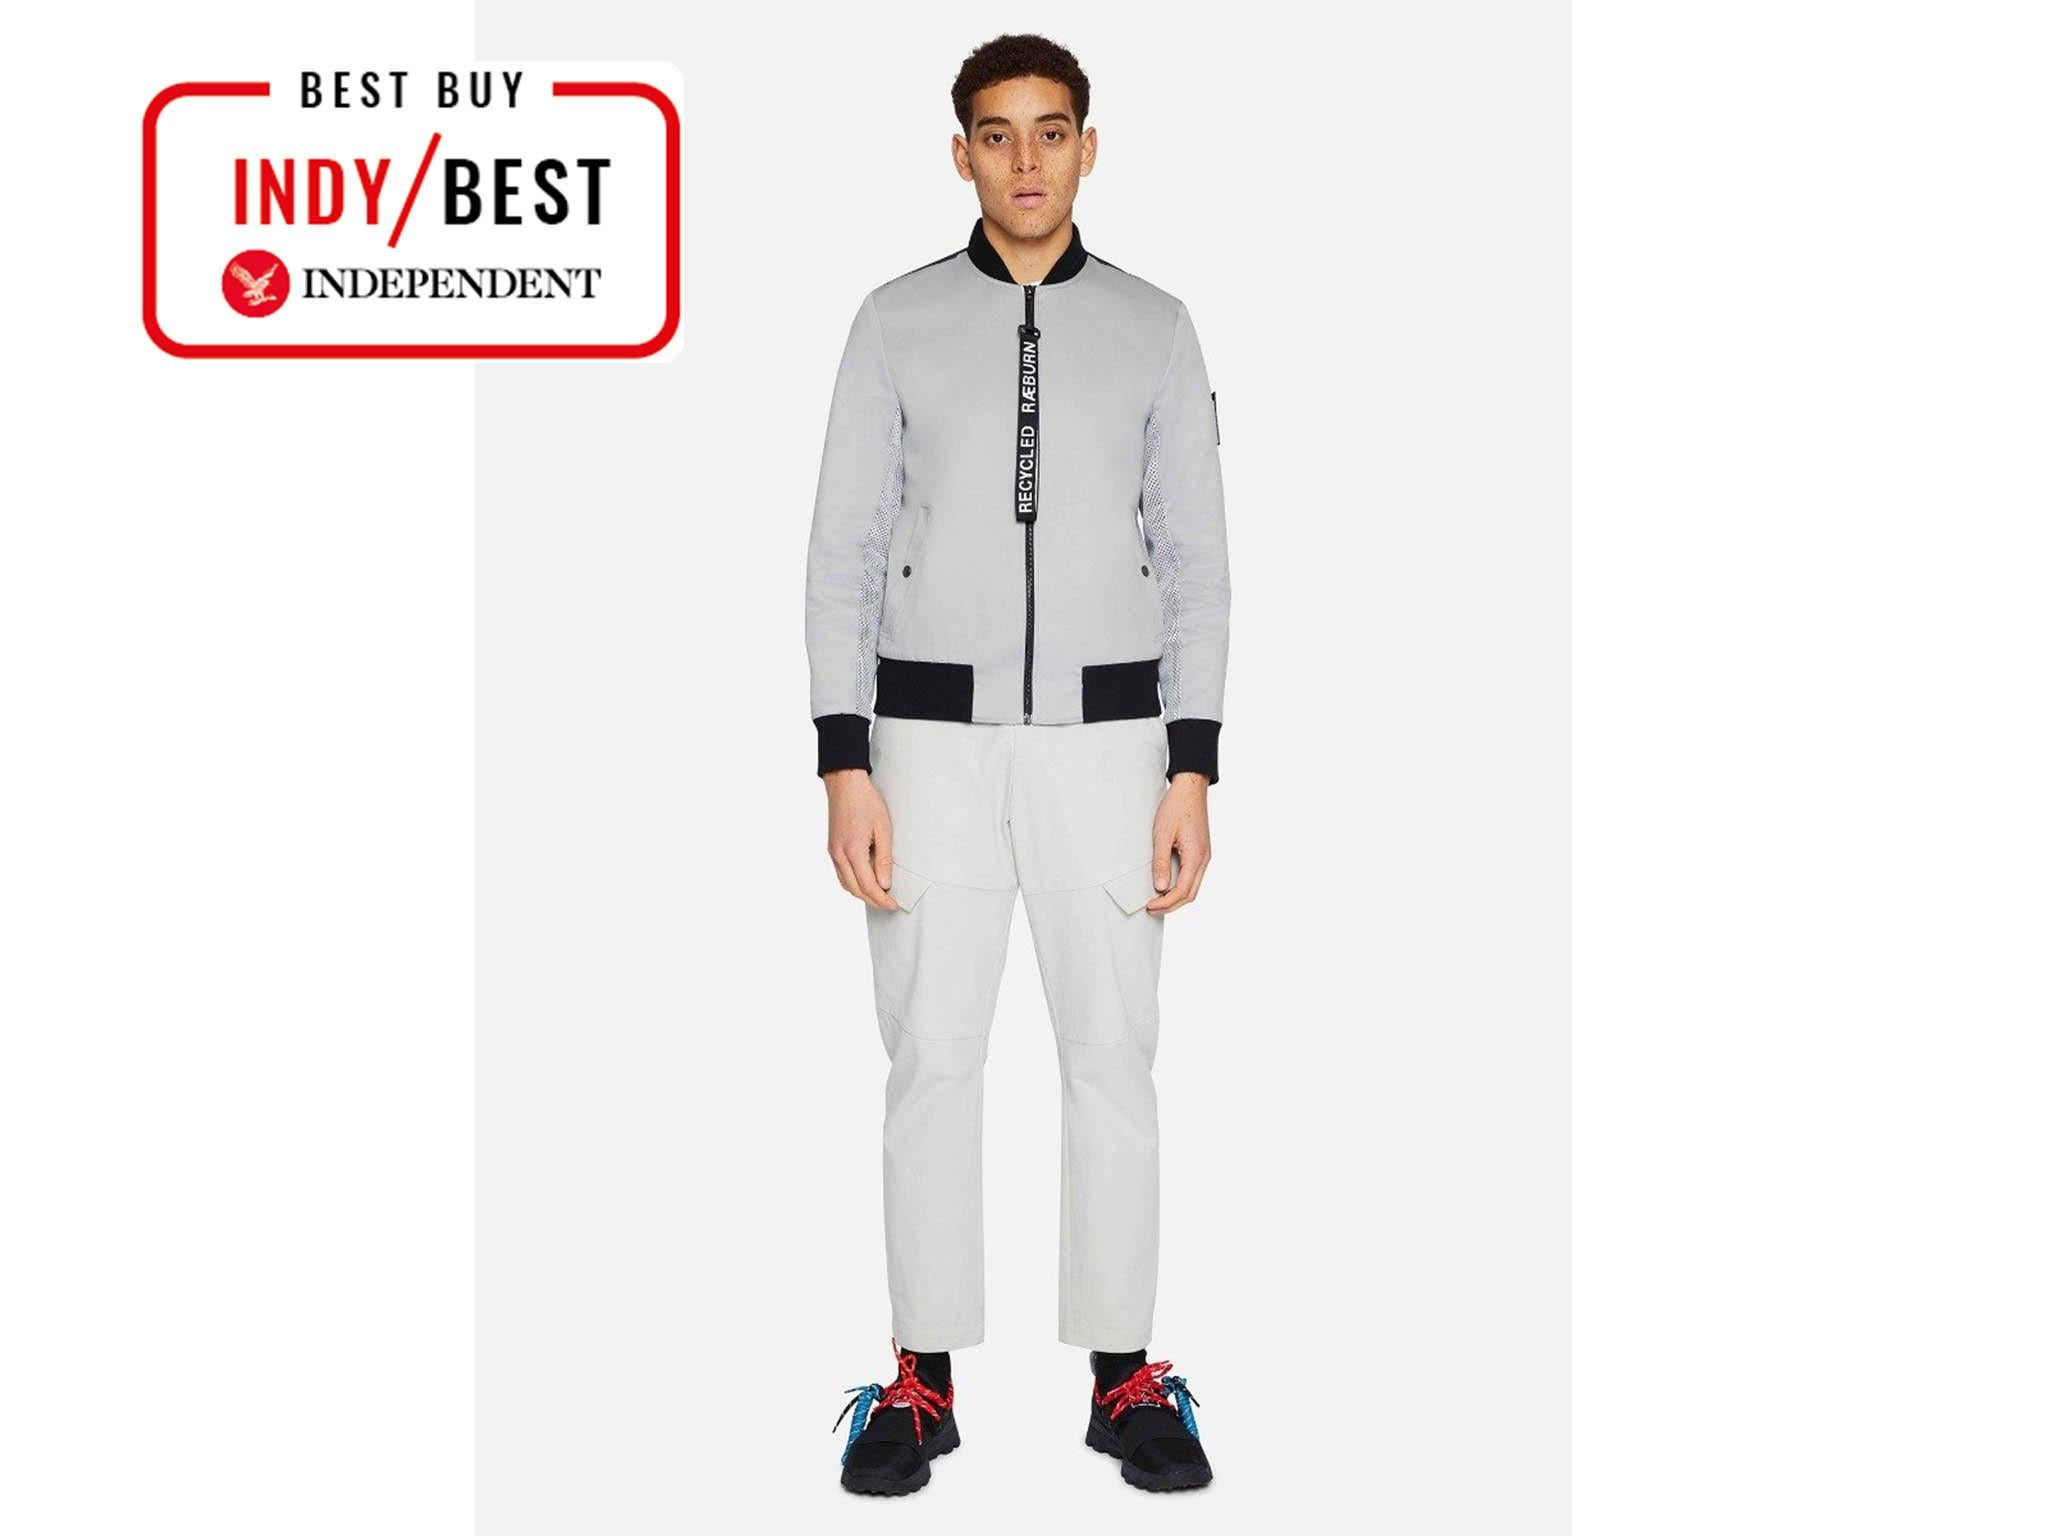 0913ec23cc692 13 best sustainable men's clothing brands that don't compromise on ...